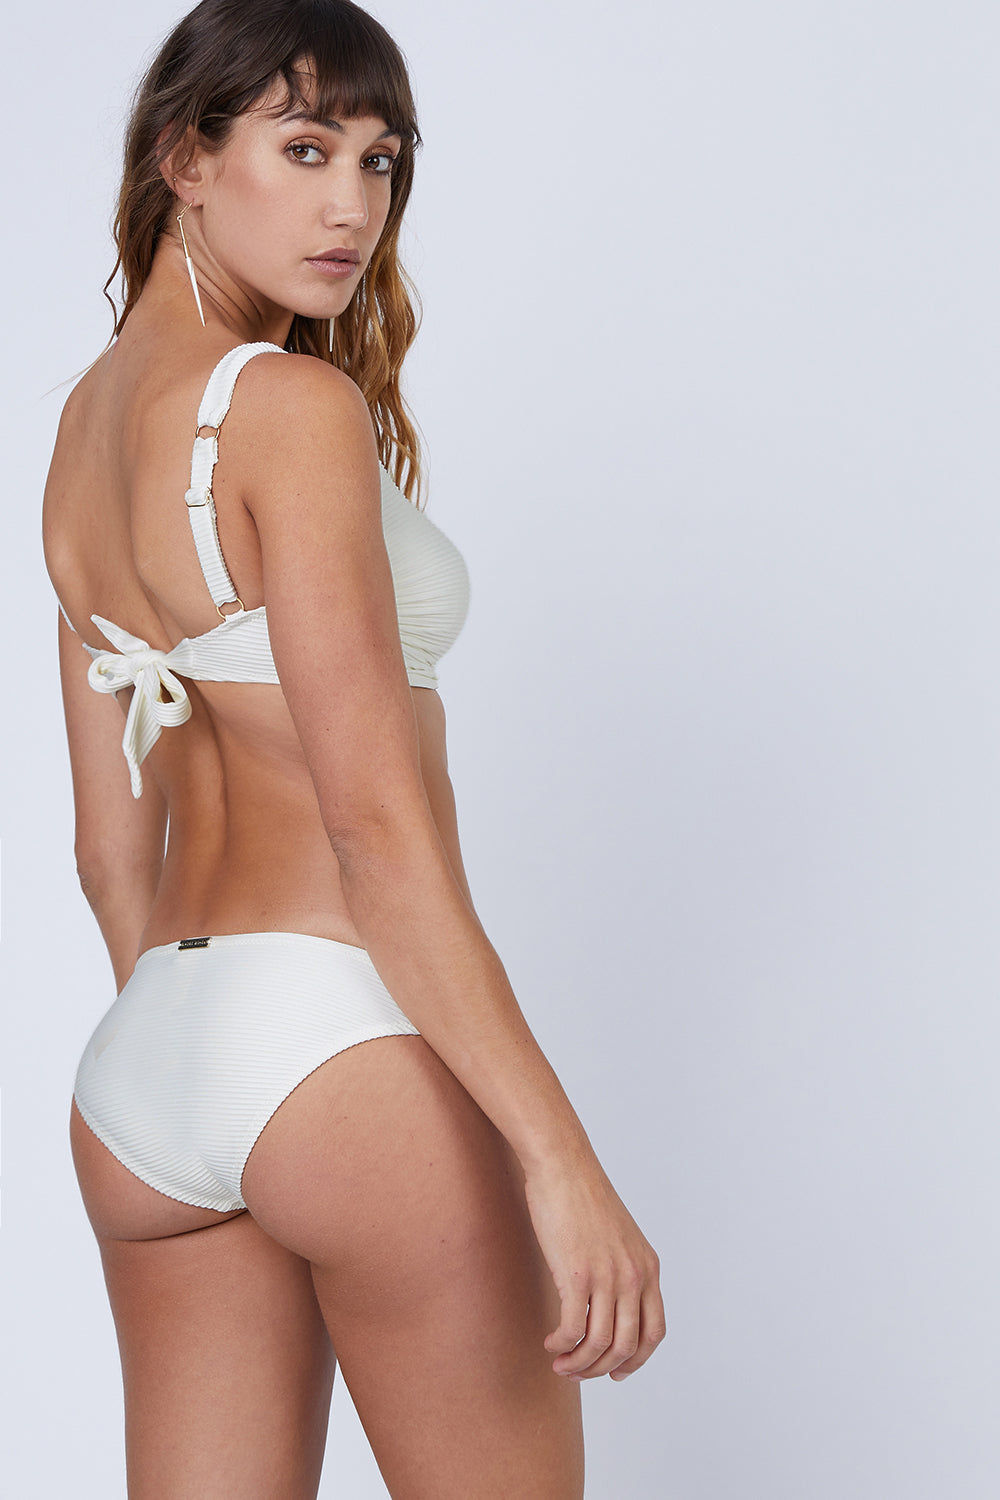 HEIDI KLEIN D-G Rectangle Bikini Top - Cream Bikini Top | Cream| heidi klein D-G Rectangle Bikini Top - Cream. Features:  Hardware at centre front and bone at side seam help with support and provide a luxurious finish. Underwired. The side seams and underarm coverage  provide support The bust is lined with sculpting fabric and the cradle is additionally lined in powermesh, thus making the top very supportive The bottom band ties are an adjustable tie back. The shoulder straps are adjustable in length and elasticated for comfort. Back View